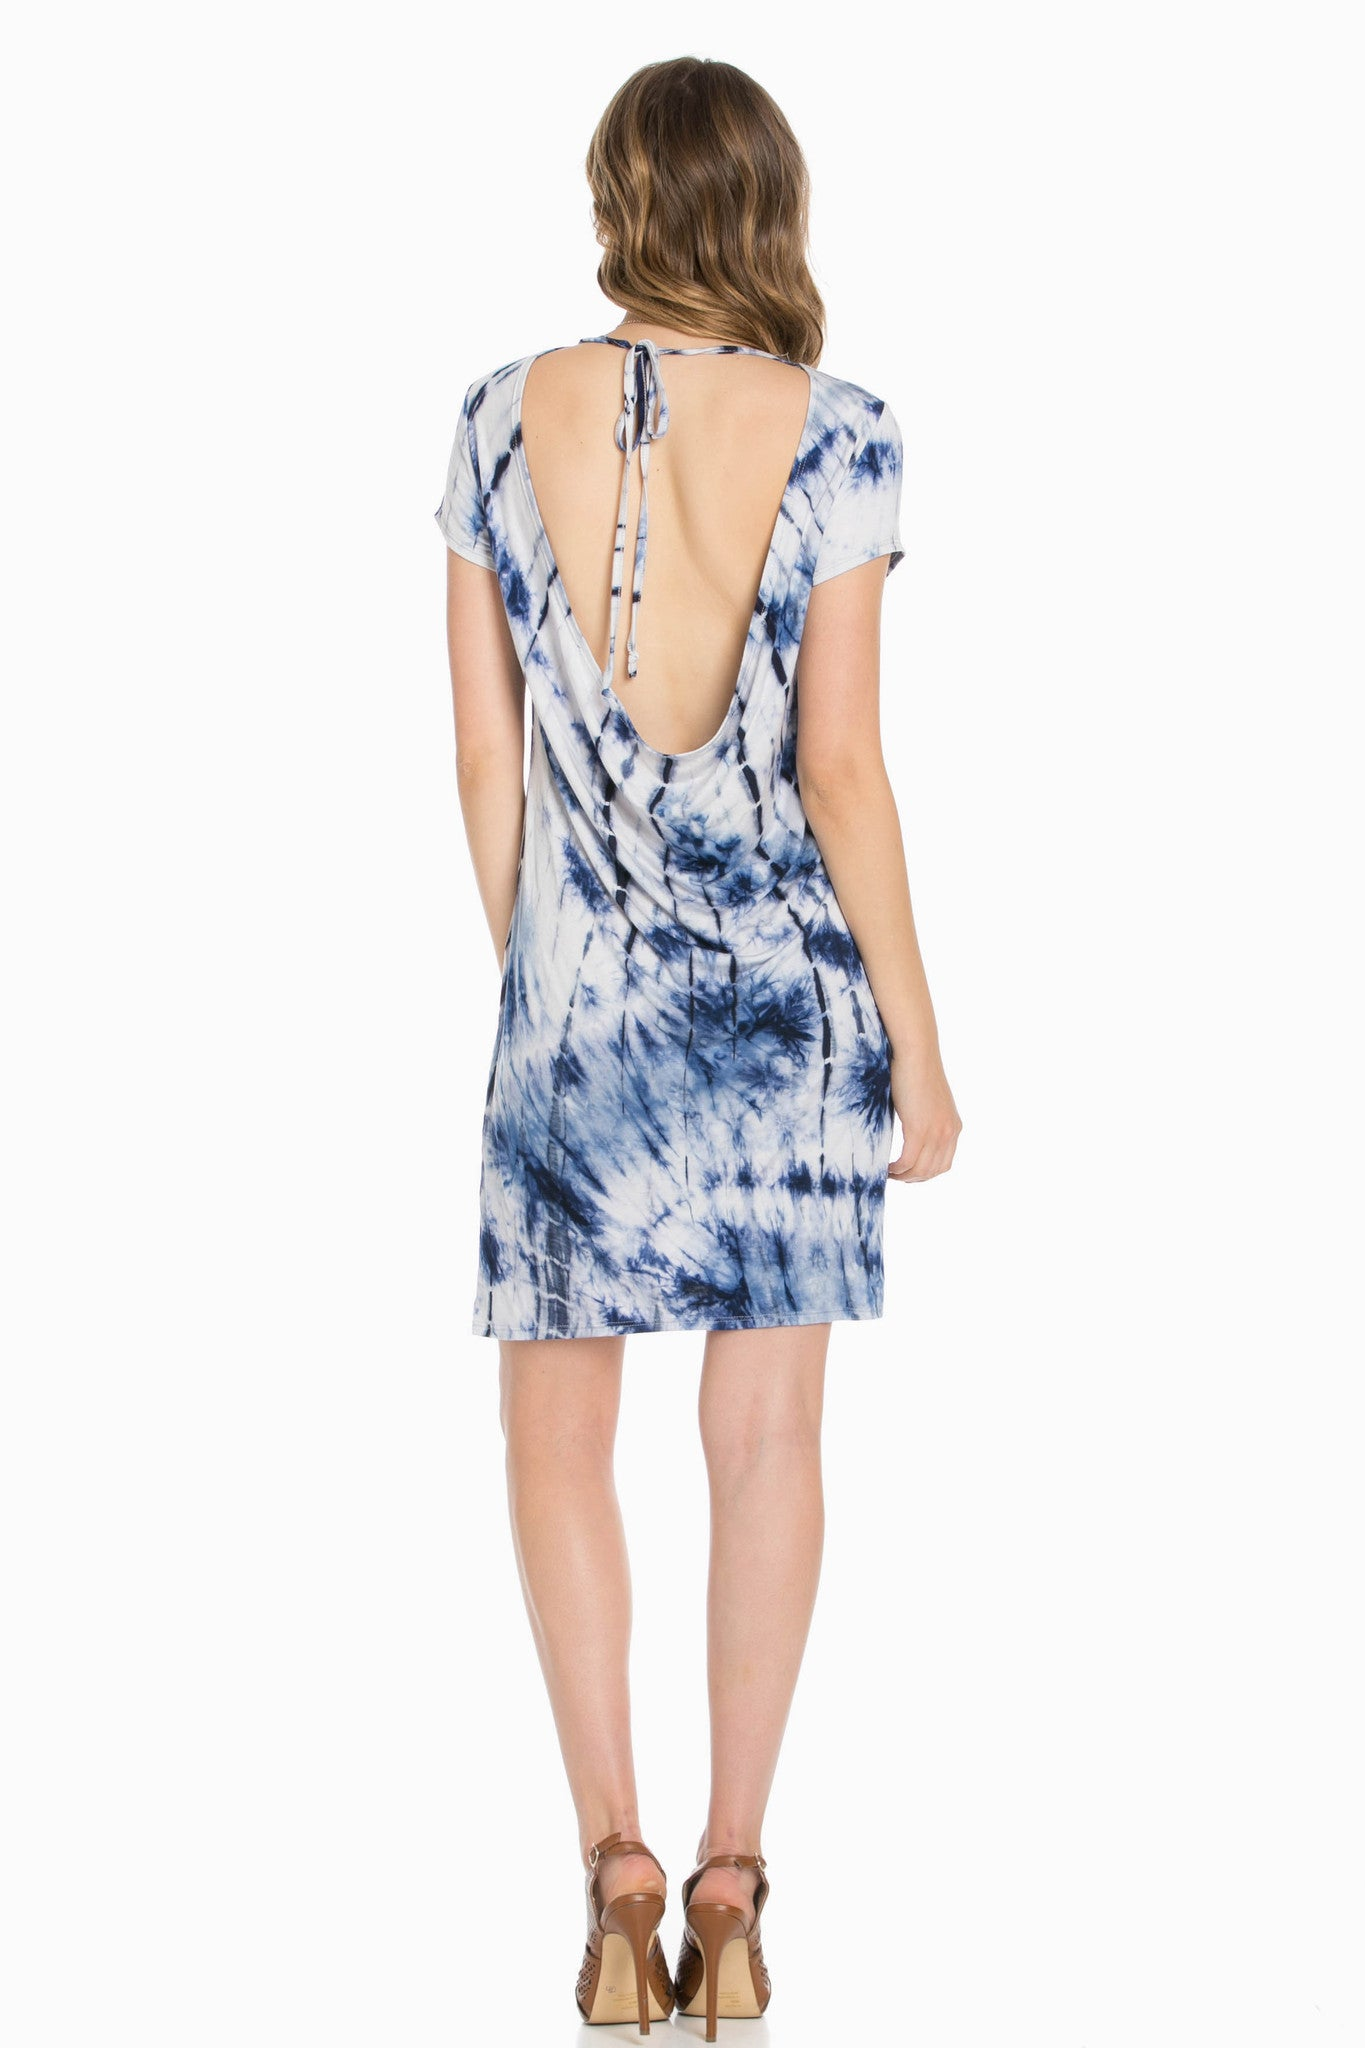 Open Back Blue Tie Dye Dress - Dresses - My Yuccie - 4